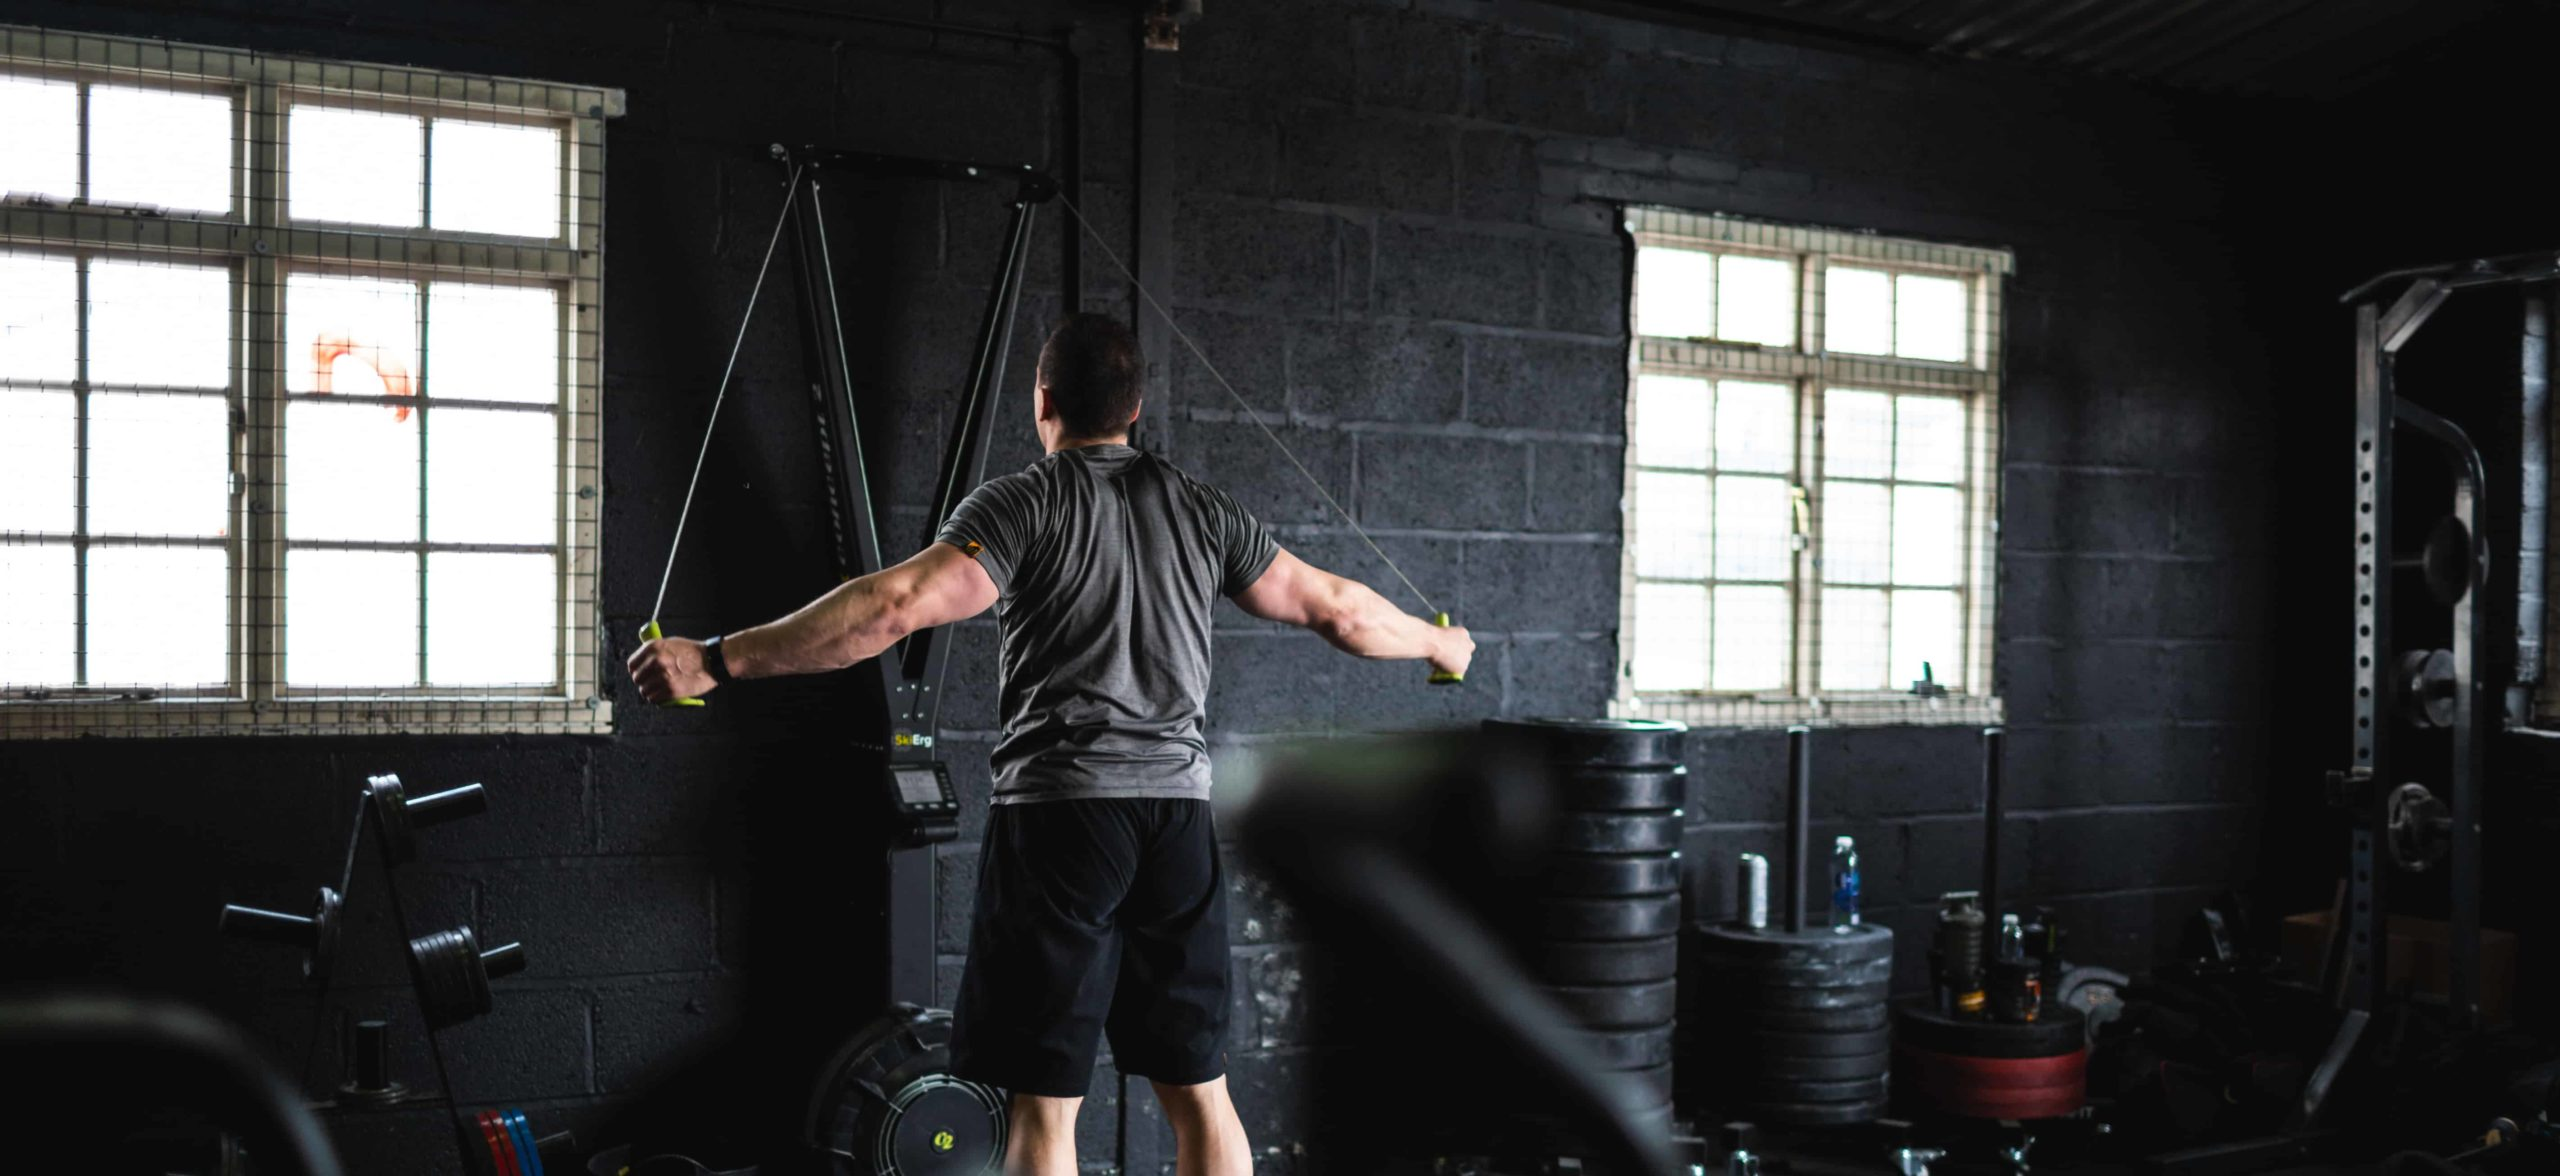 What are the benefits of circuit training